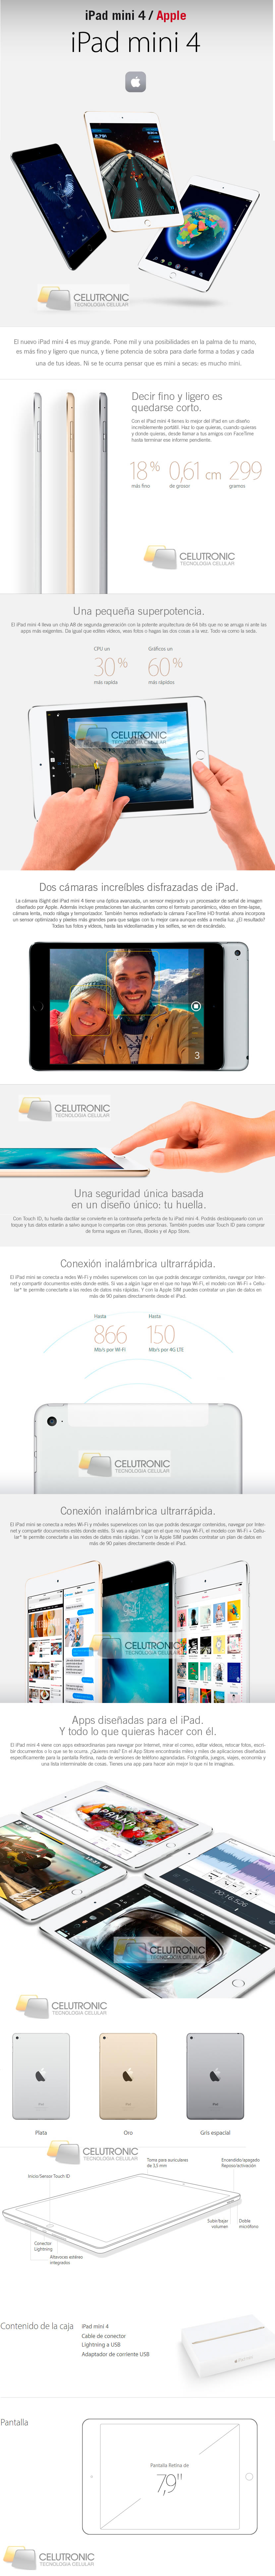 Apple iPad Mini 4 Wifi 4G En argentina